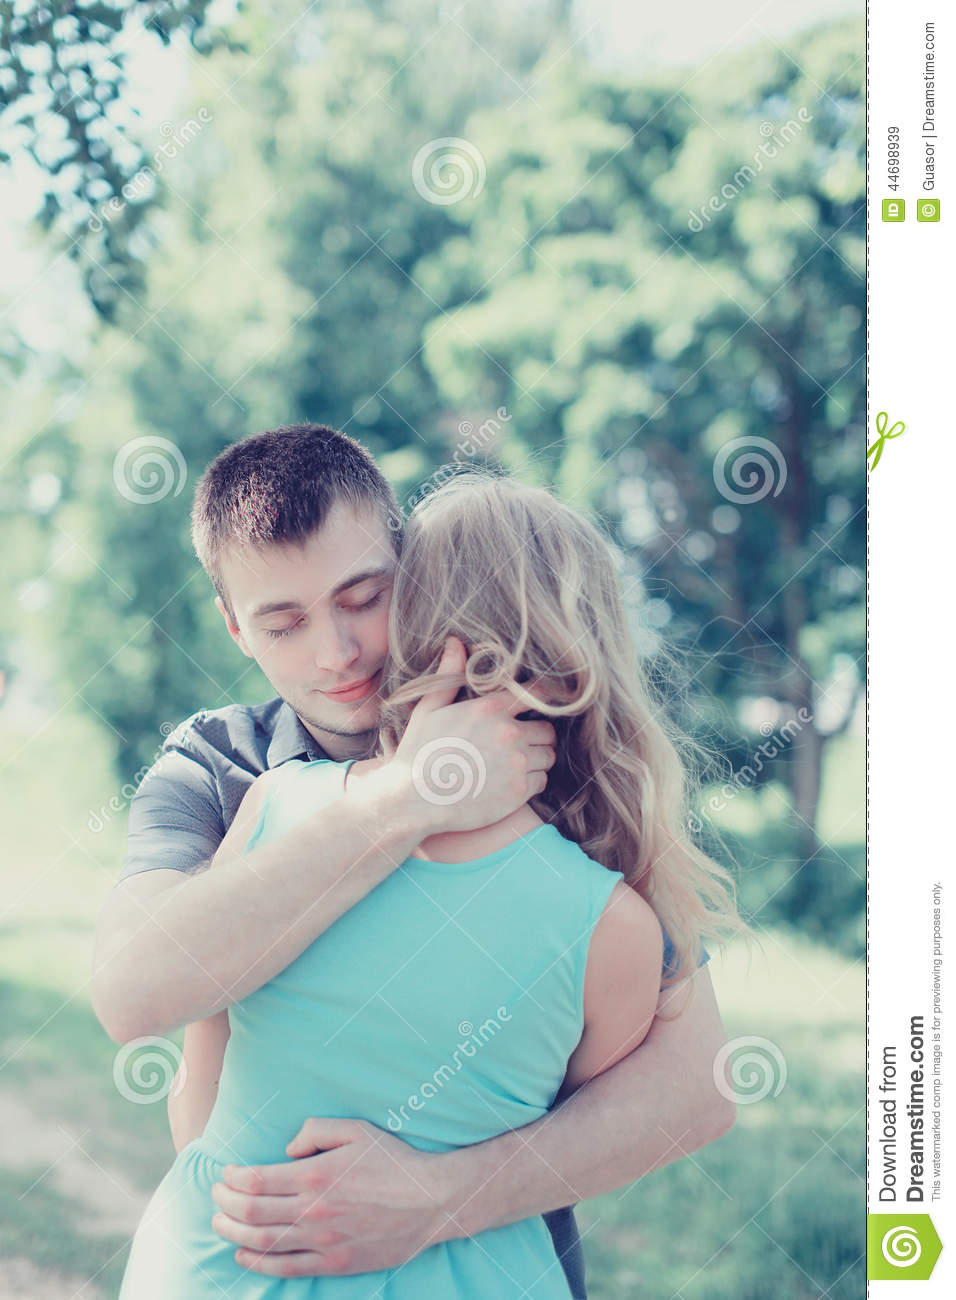 Lovely Sensual Couple In Love Man Embracing Woman Warm Feeling